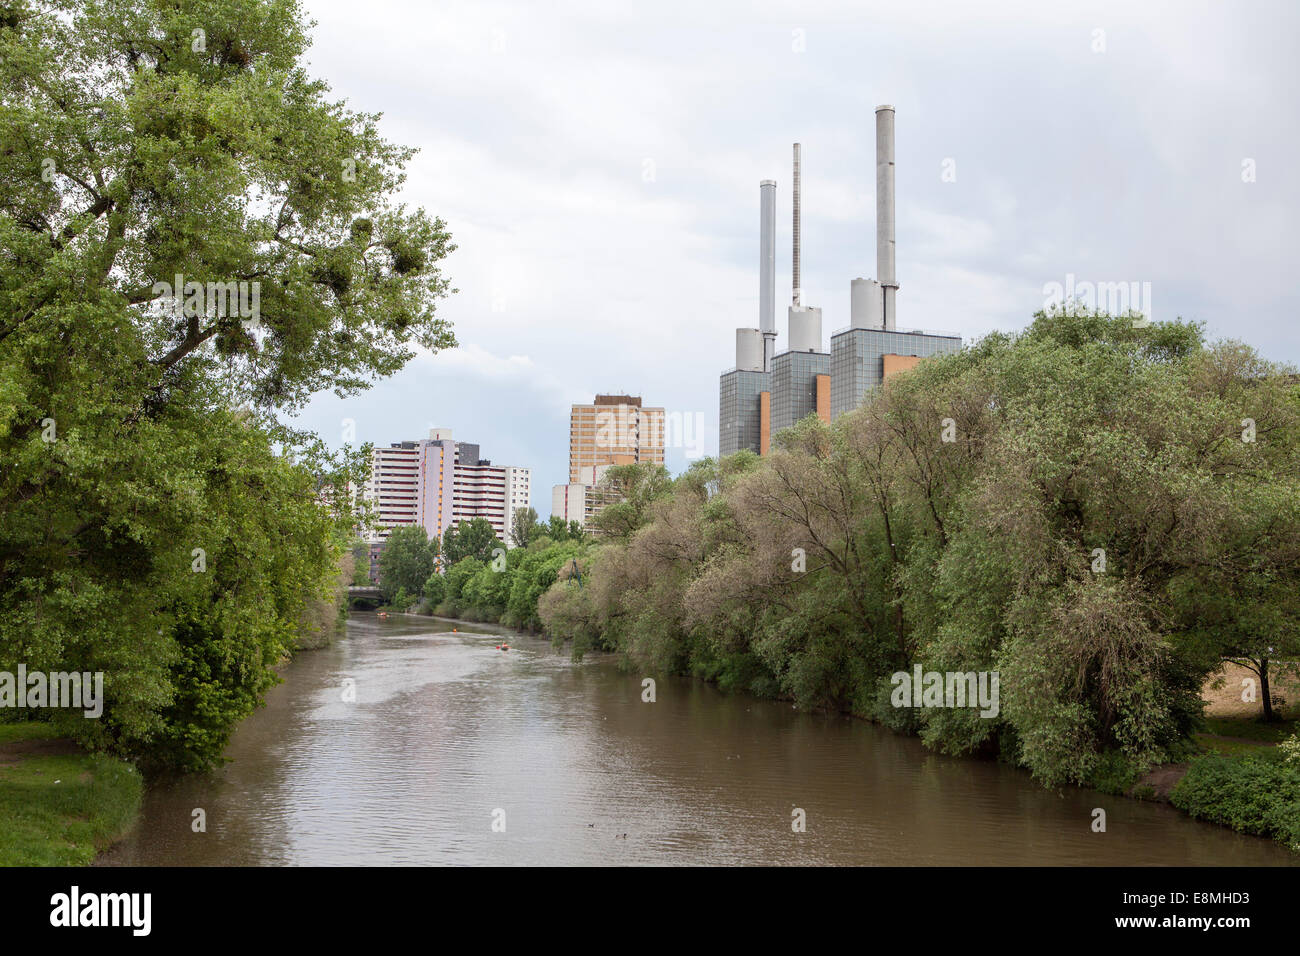 Heating plant, Ihme River, Linden, Hanover, Lower Saxony, Germany, Europe - Stock Image